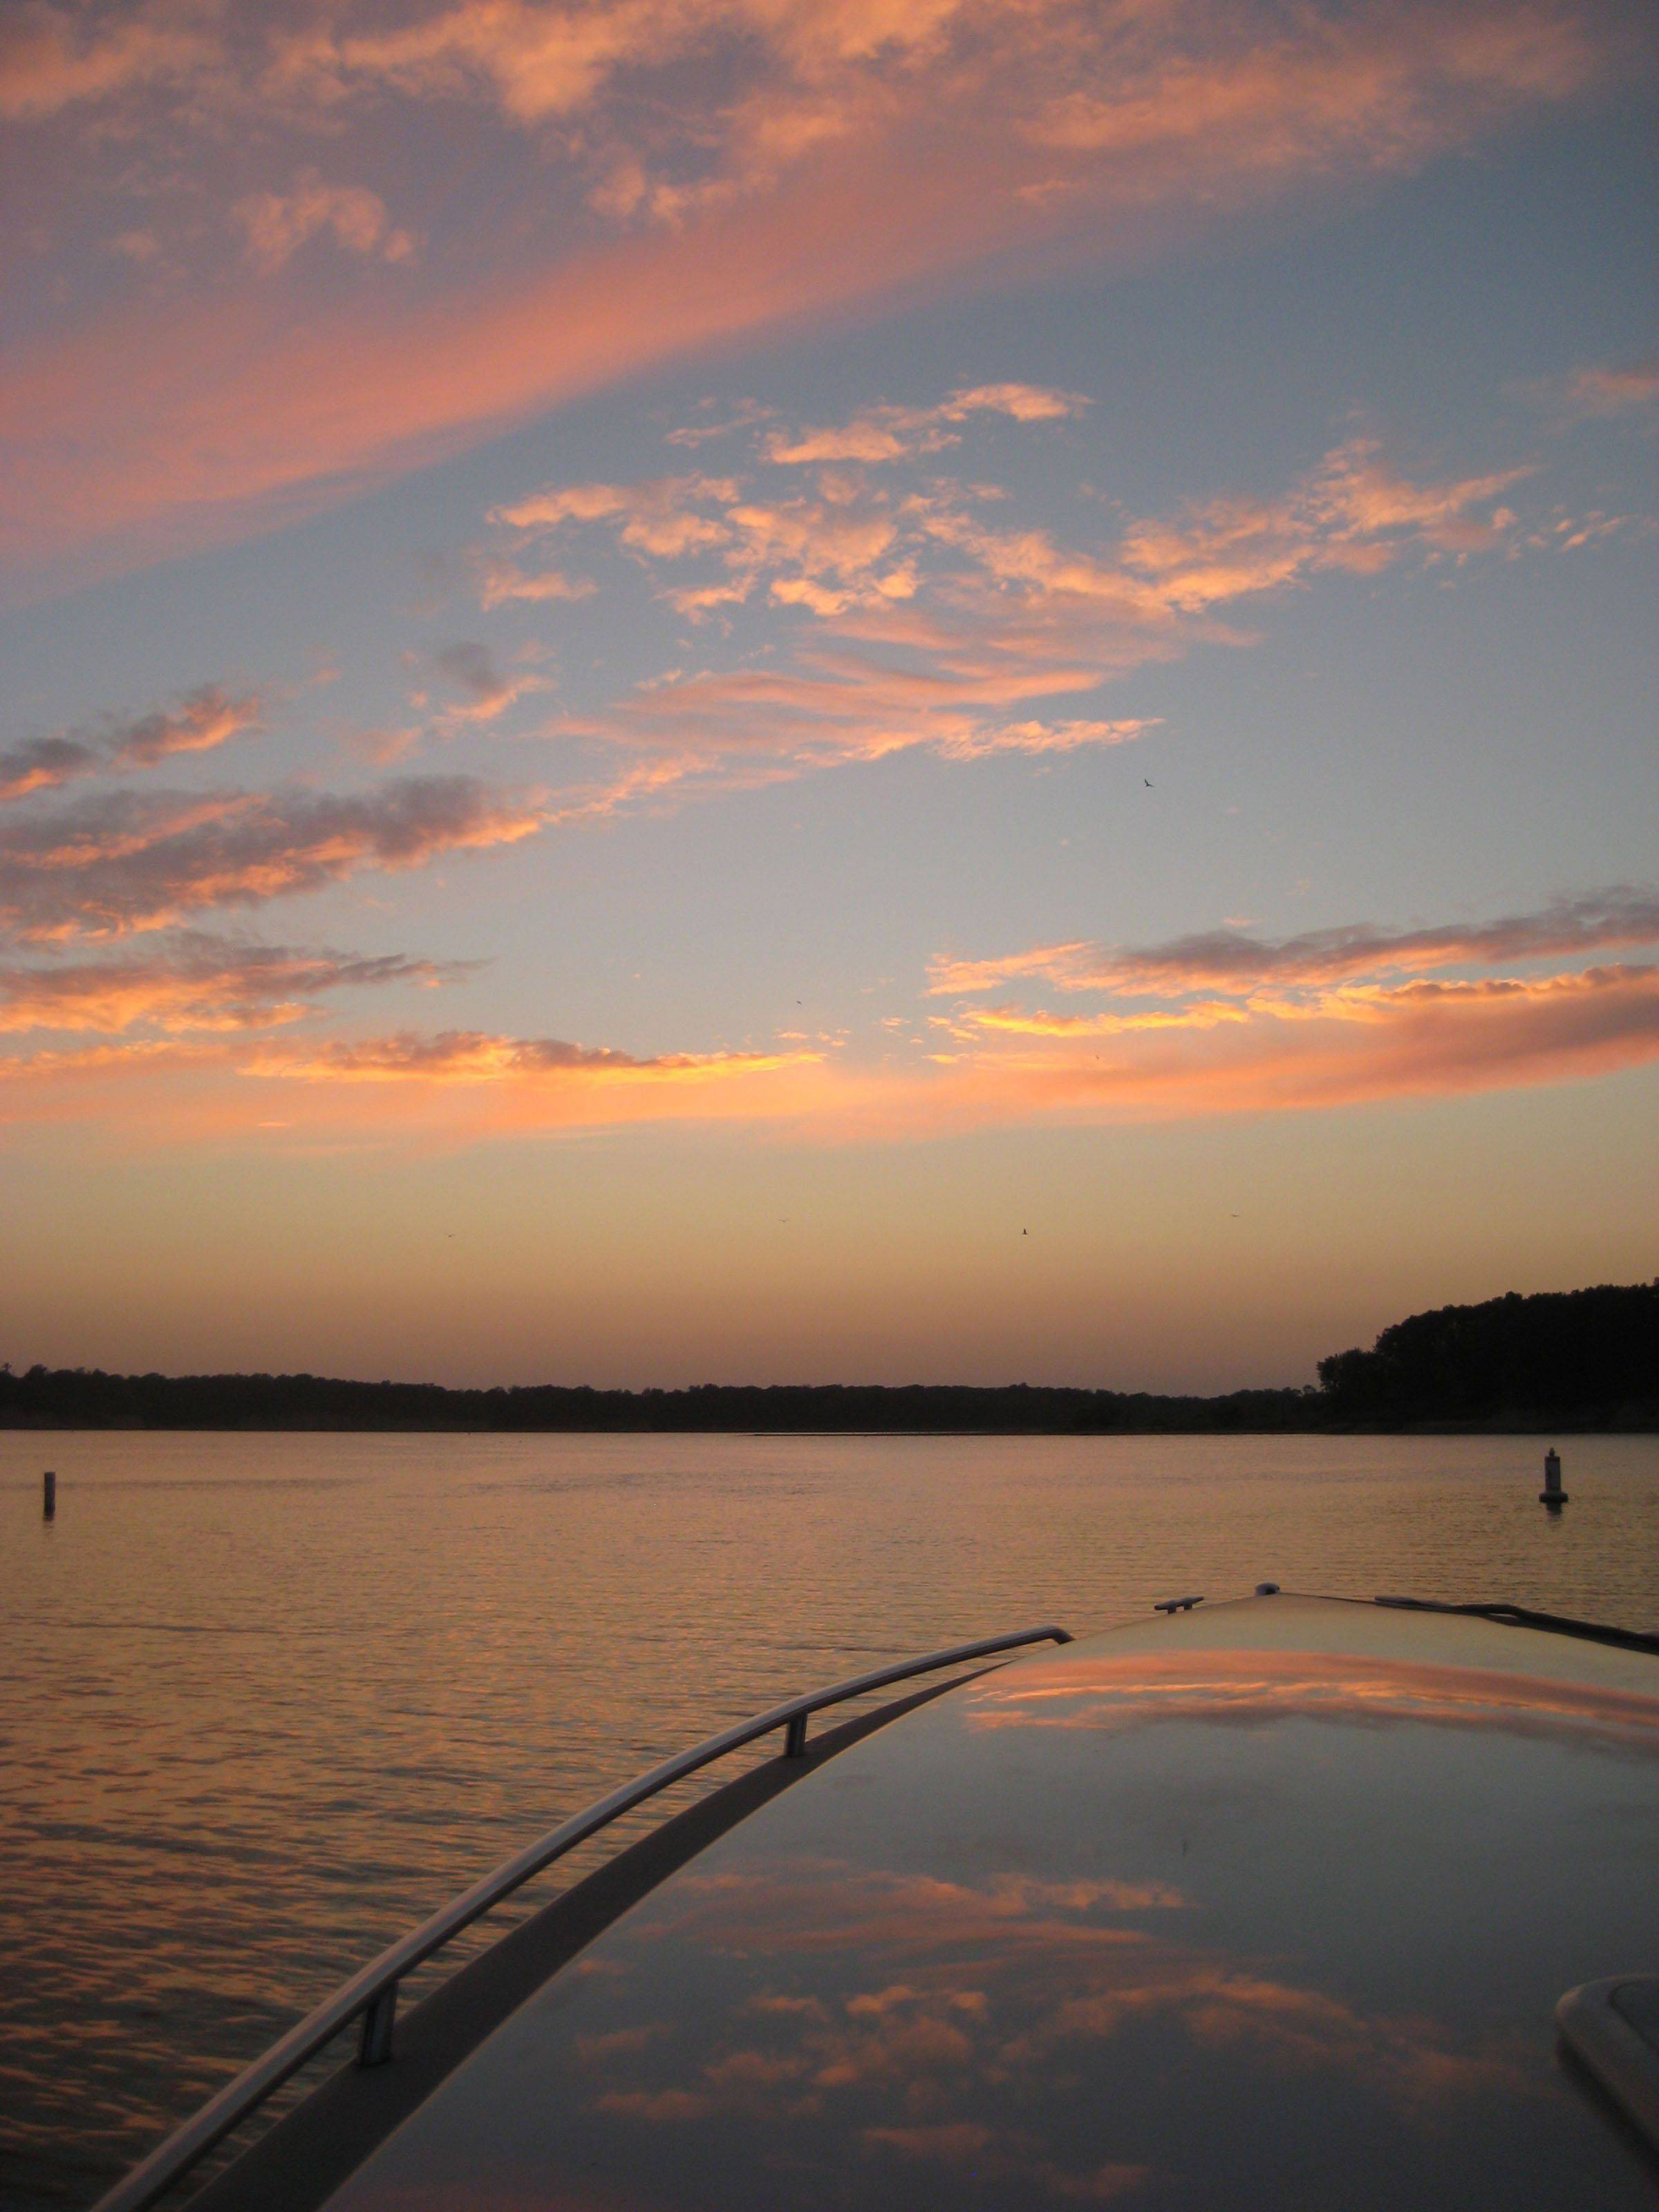 The warm hues of the sunset reflect on the nose of a boat at Lake Shelbyville in Sullivan.